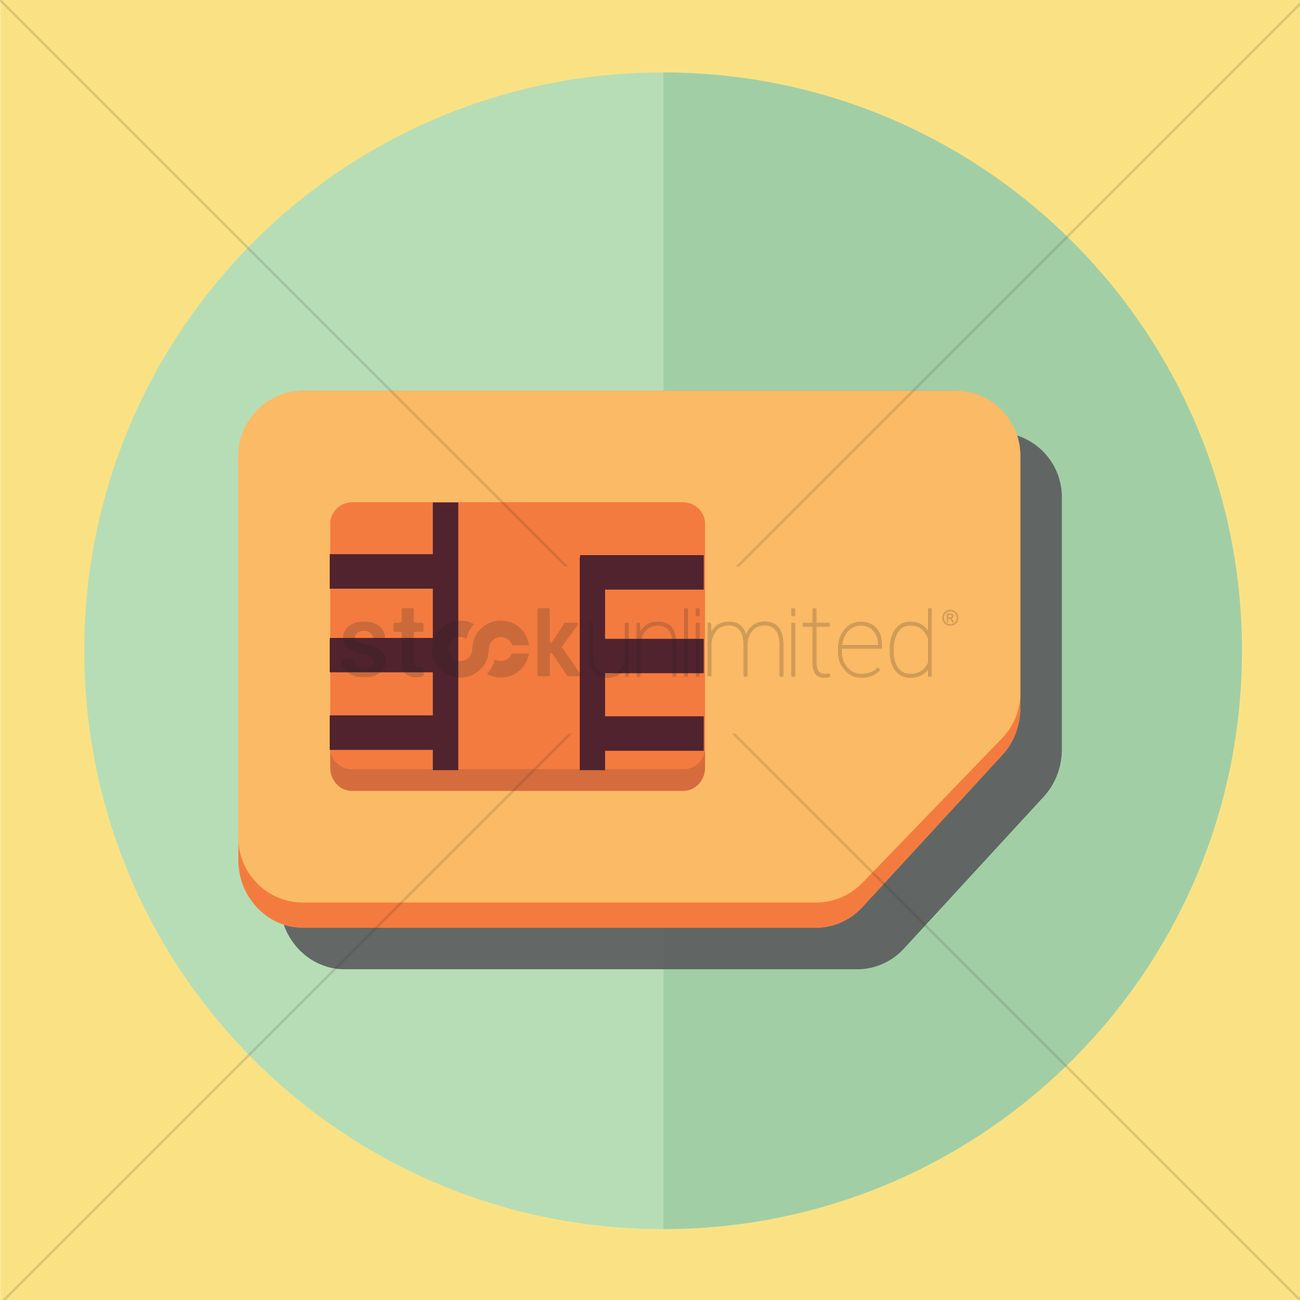 Subscriber identity module card Vector Image.